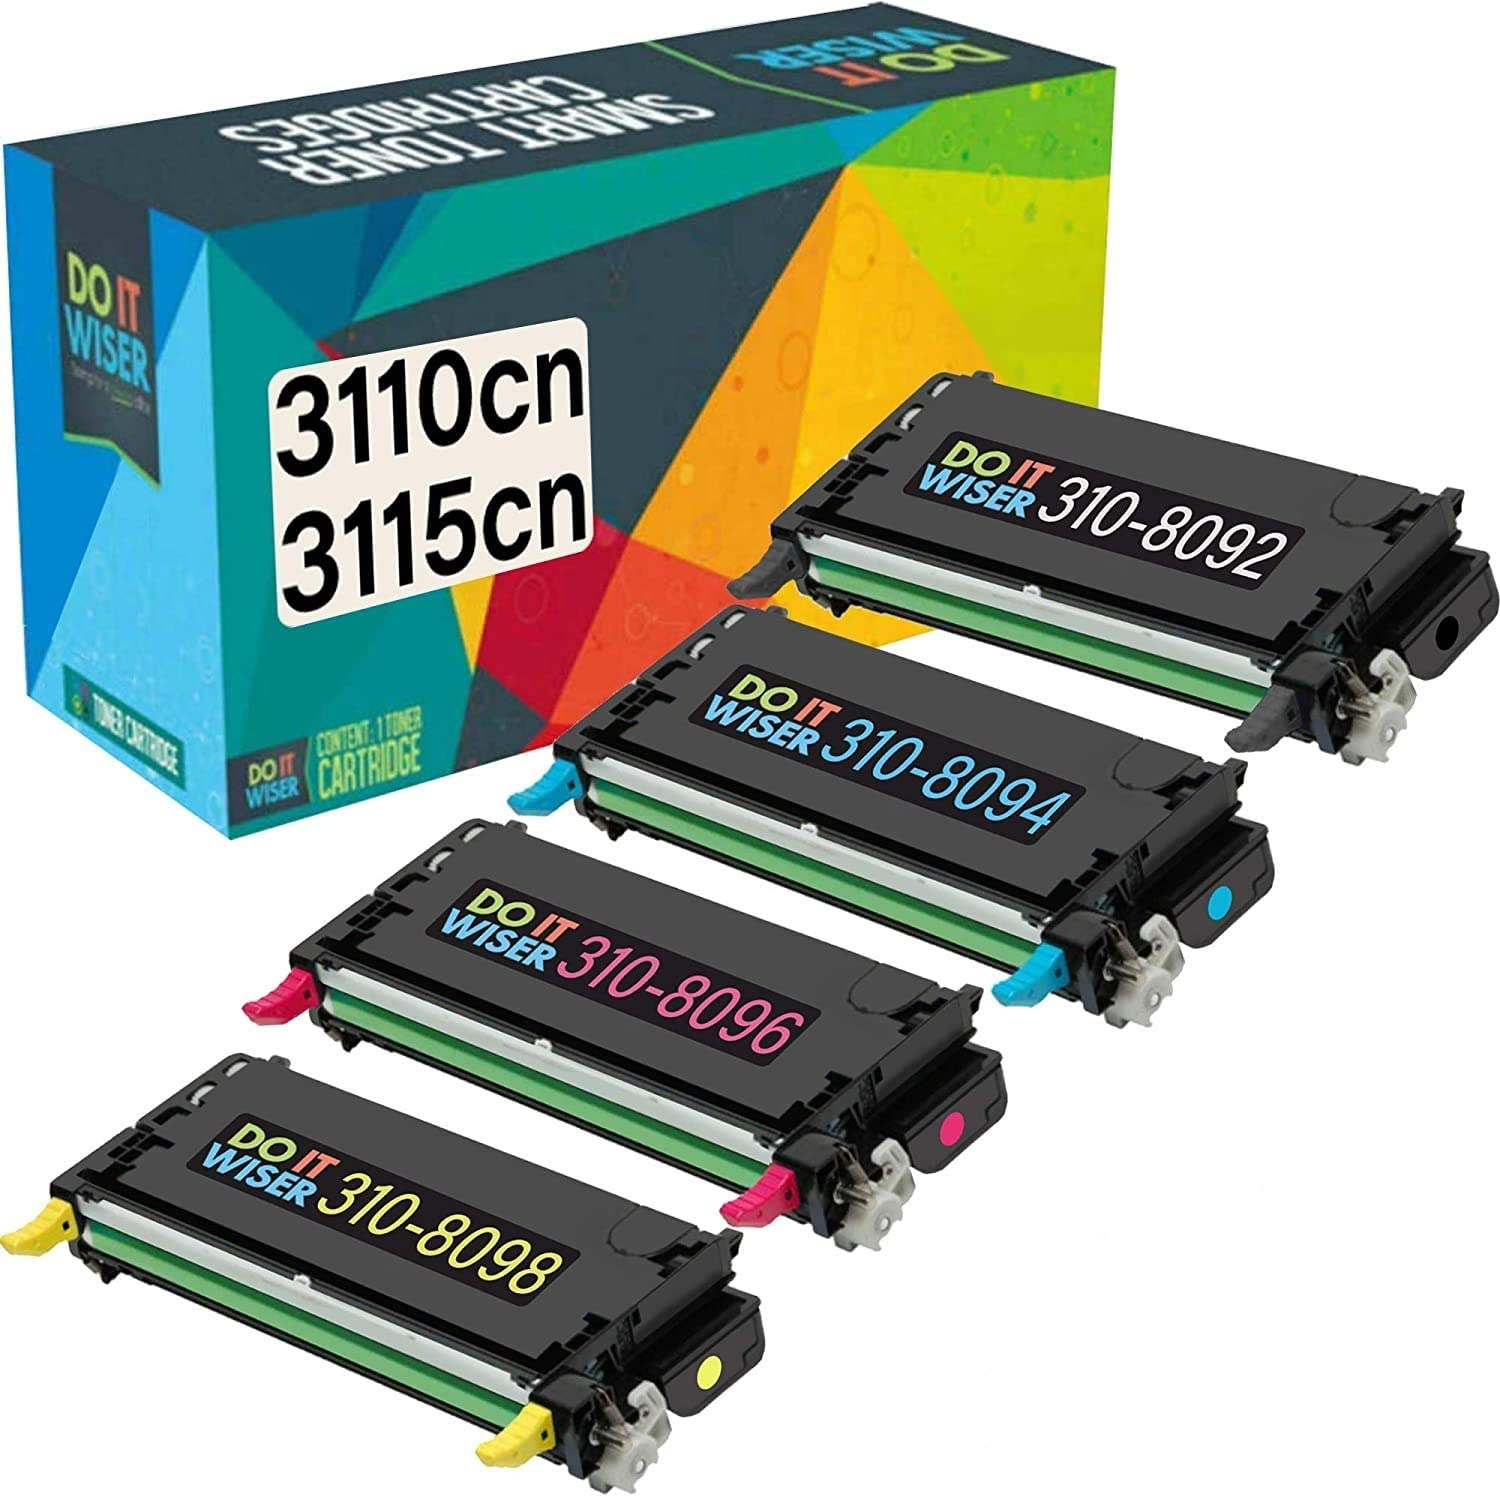 Do it Wiser Compatible Toner Cartridge Replacement for Dell 3110cn 3115cn 3110 3115 | 310-8092 310-8094 310-8096 310-8098 High Yield (8,000 Pages) 4-Pack